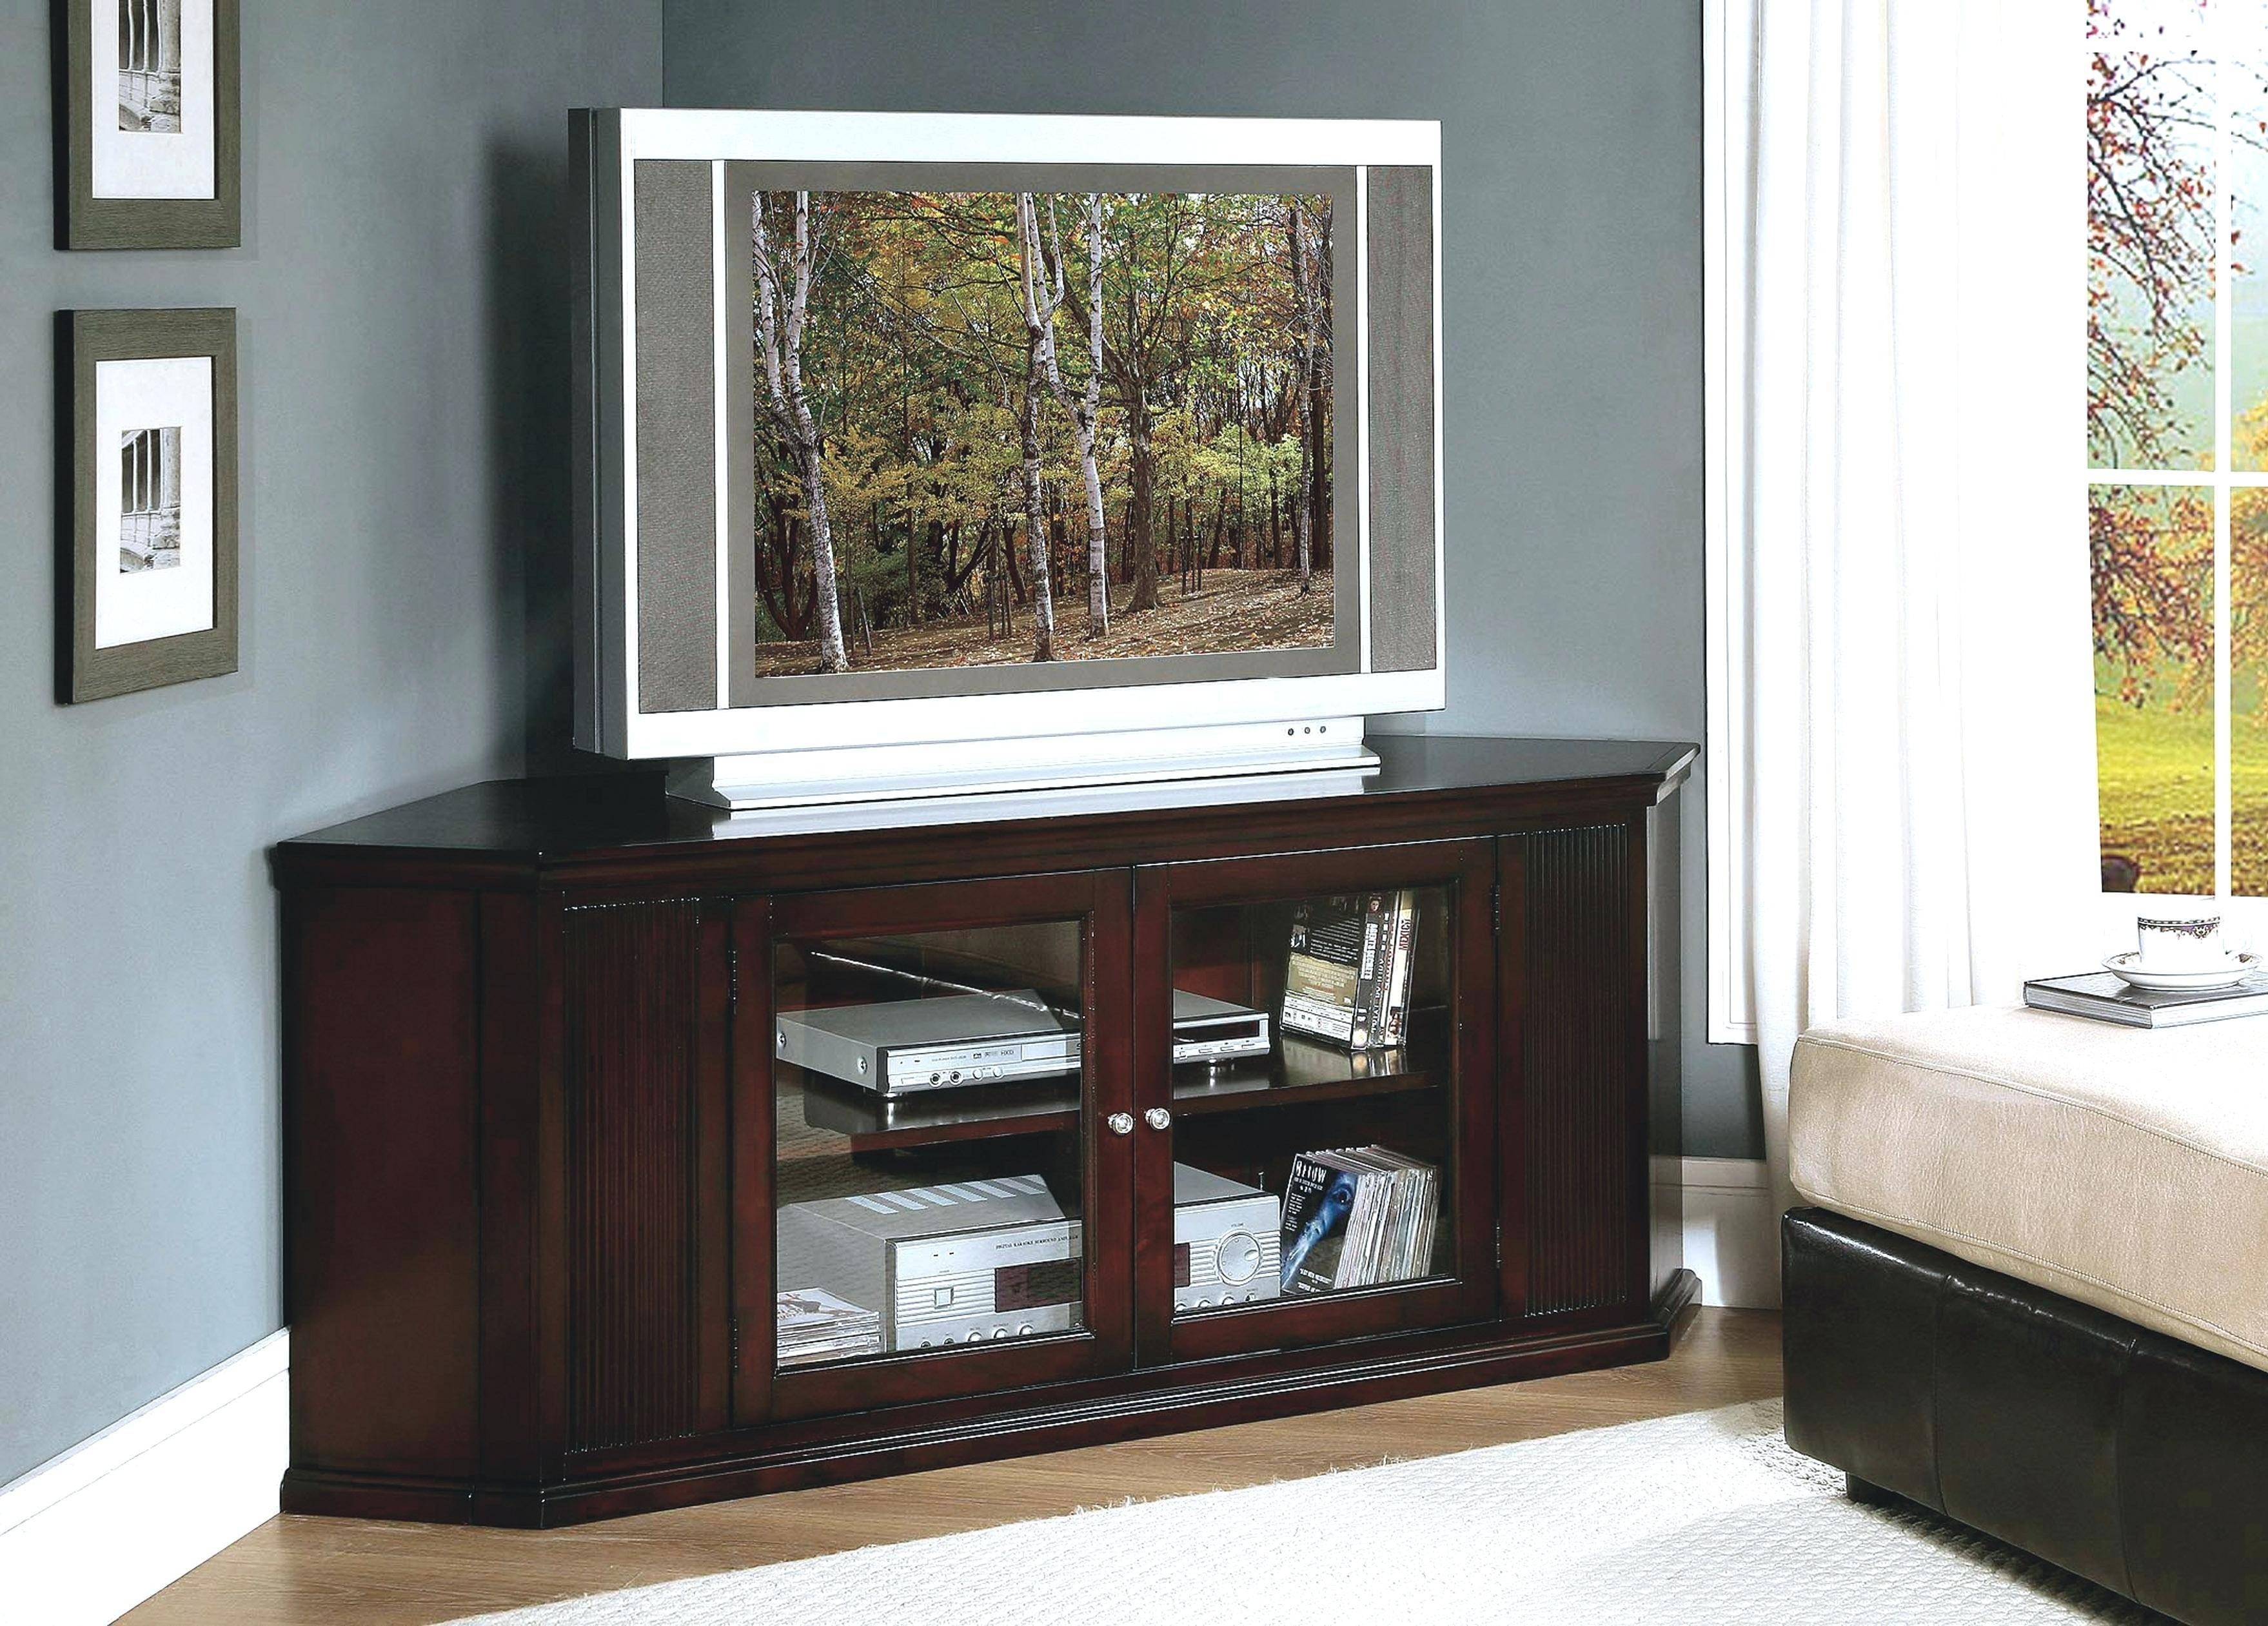 15 best ideas of corner tv cabinets for flat screens with Tall corner cabinets for living room